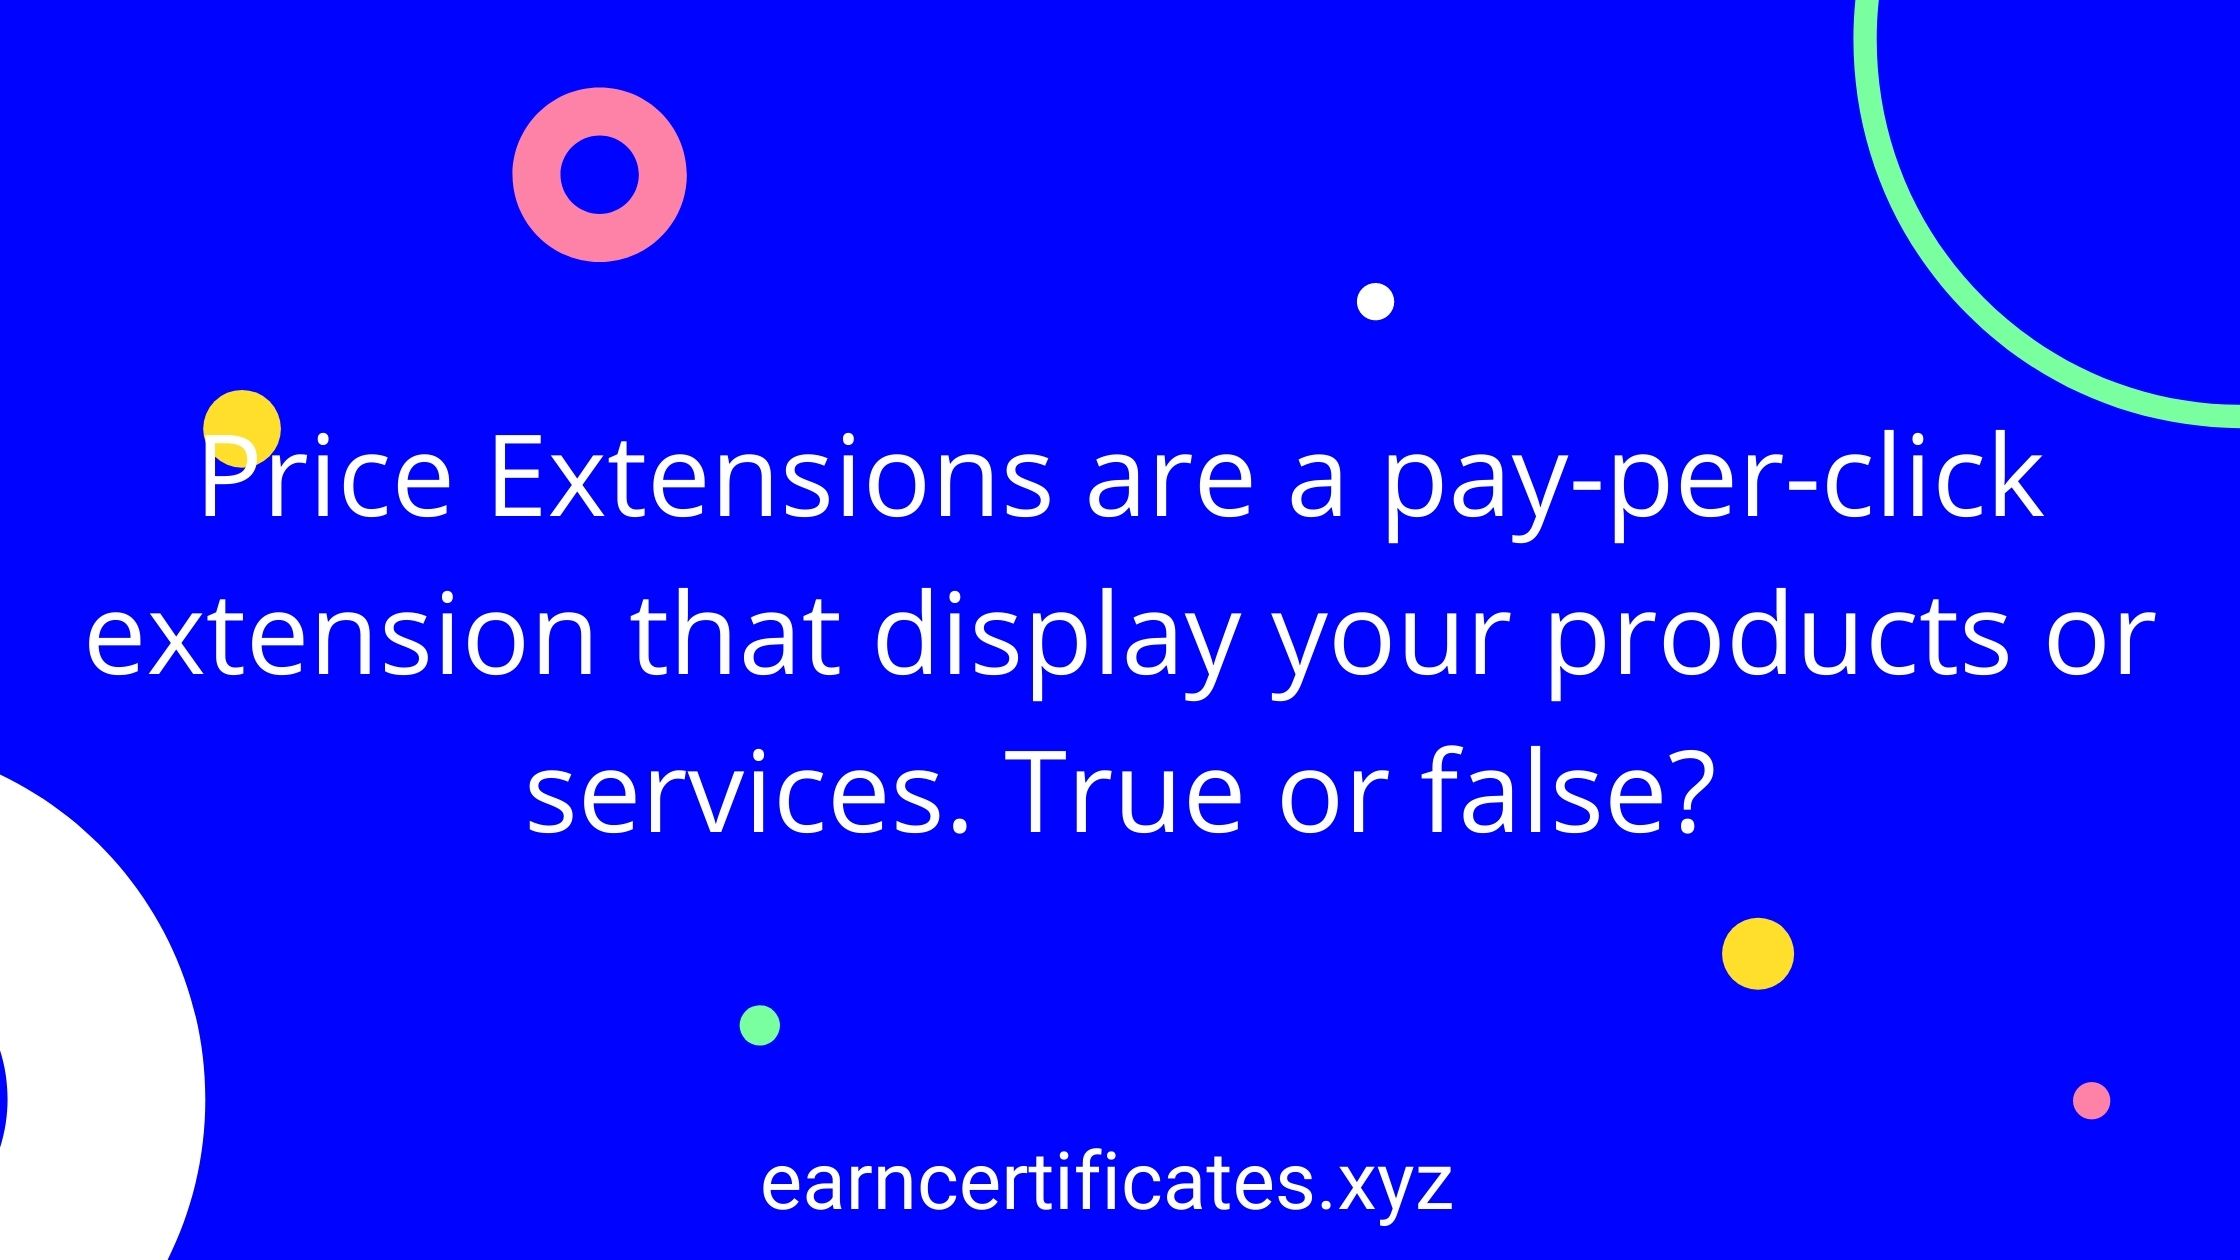 Price Extensions are a pay-per-click extension that display your products or services. True or false?